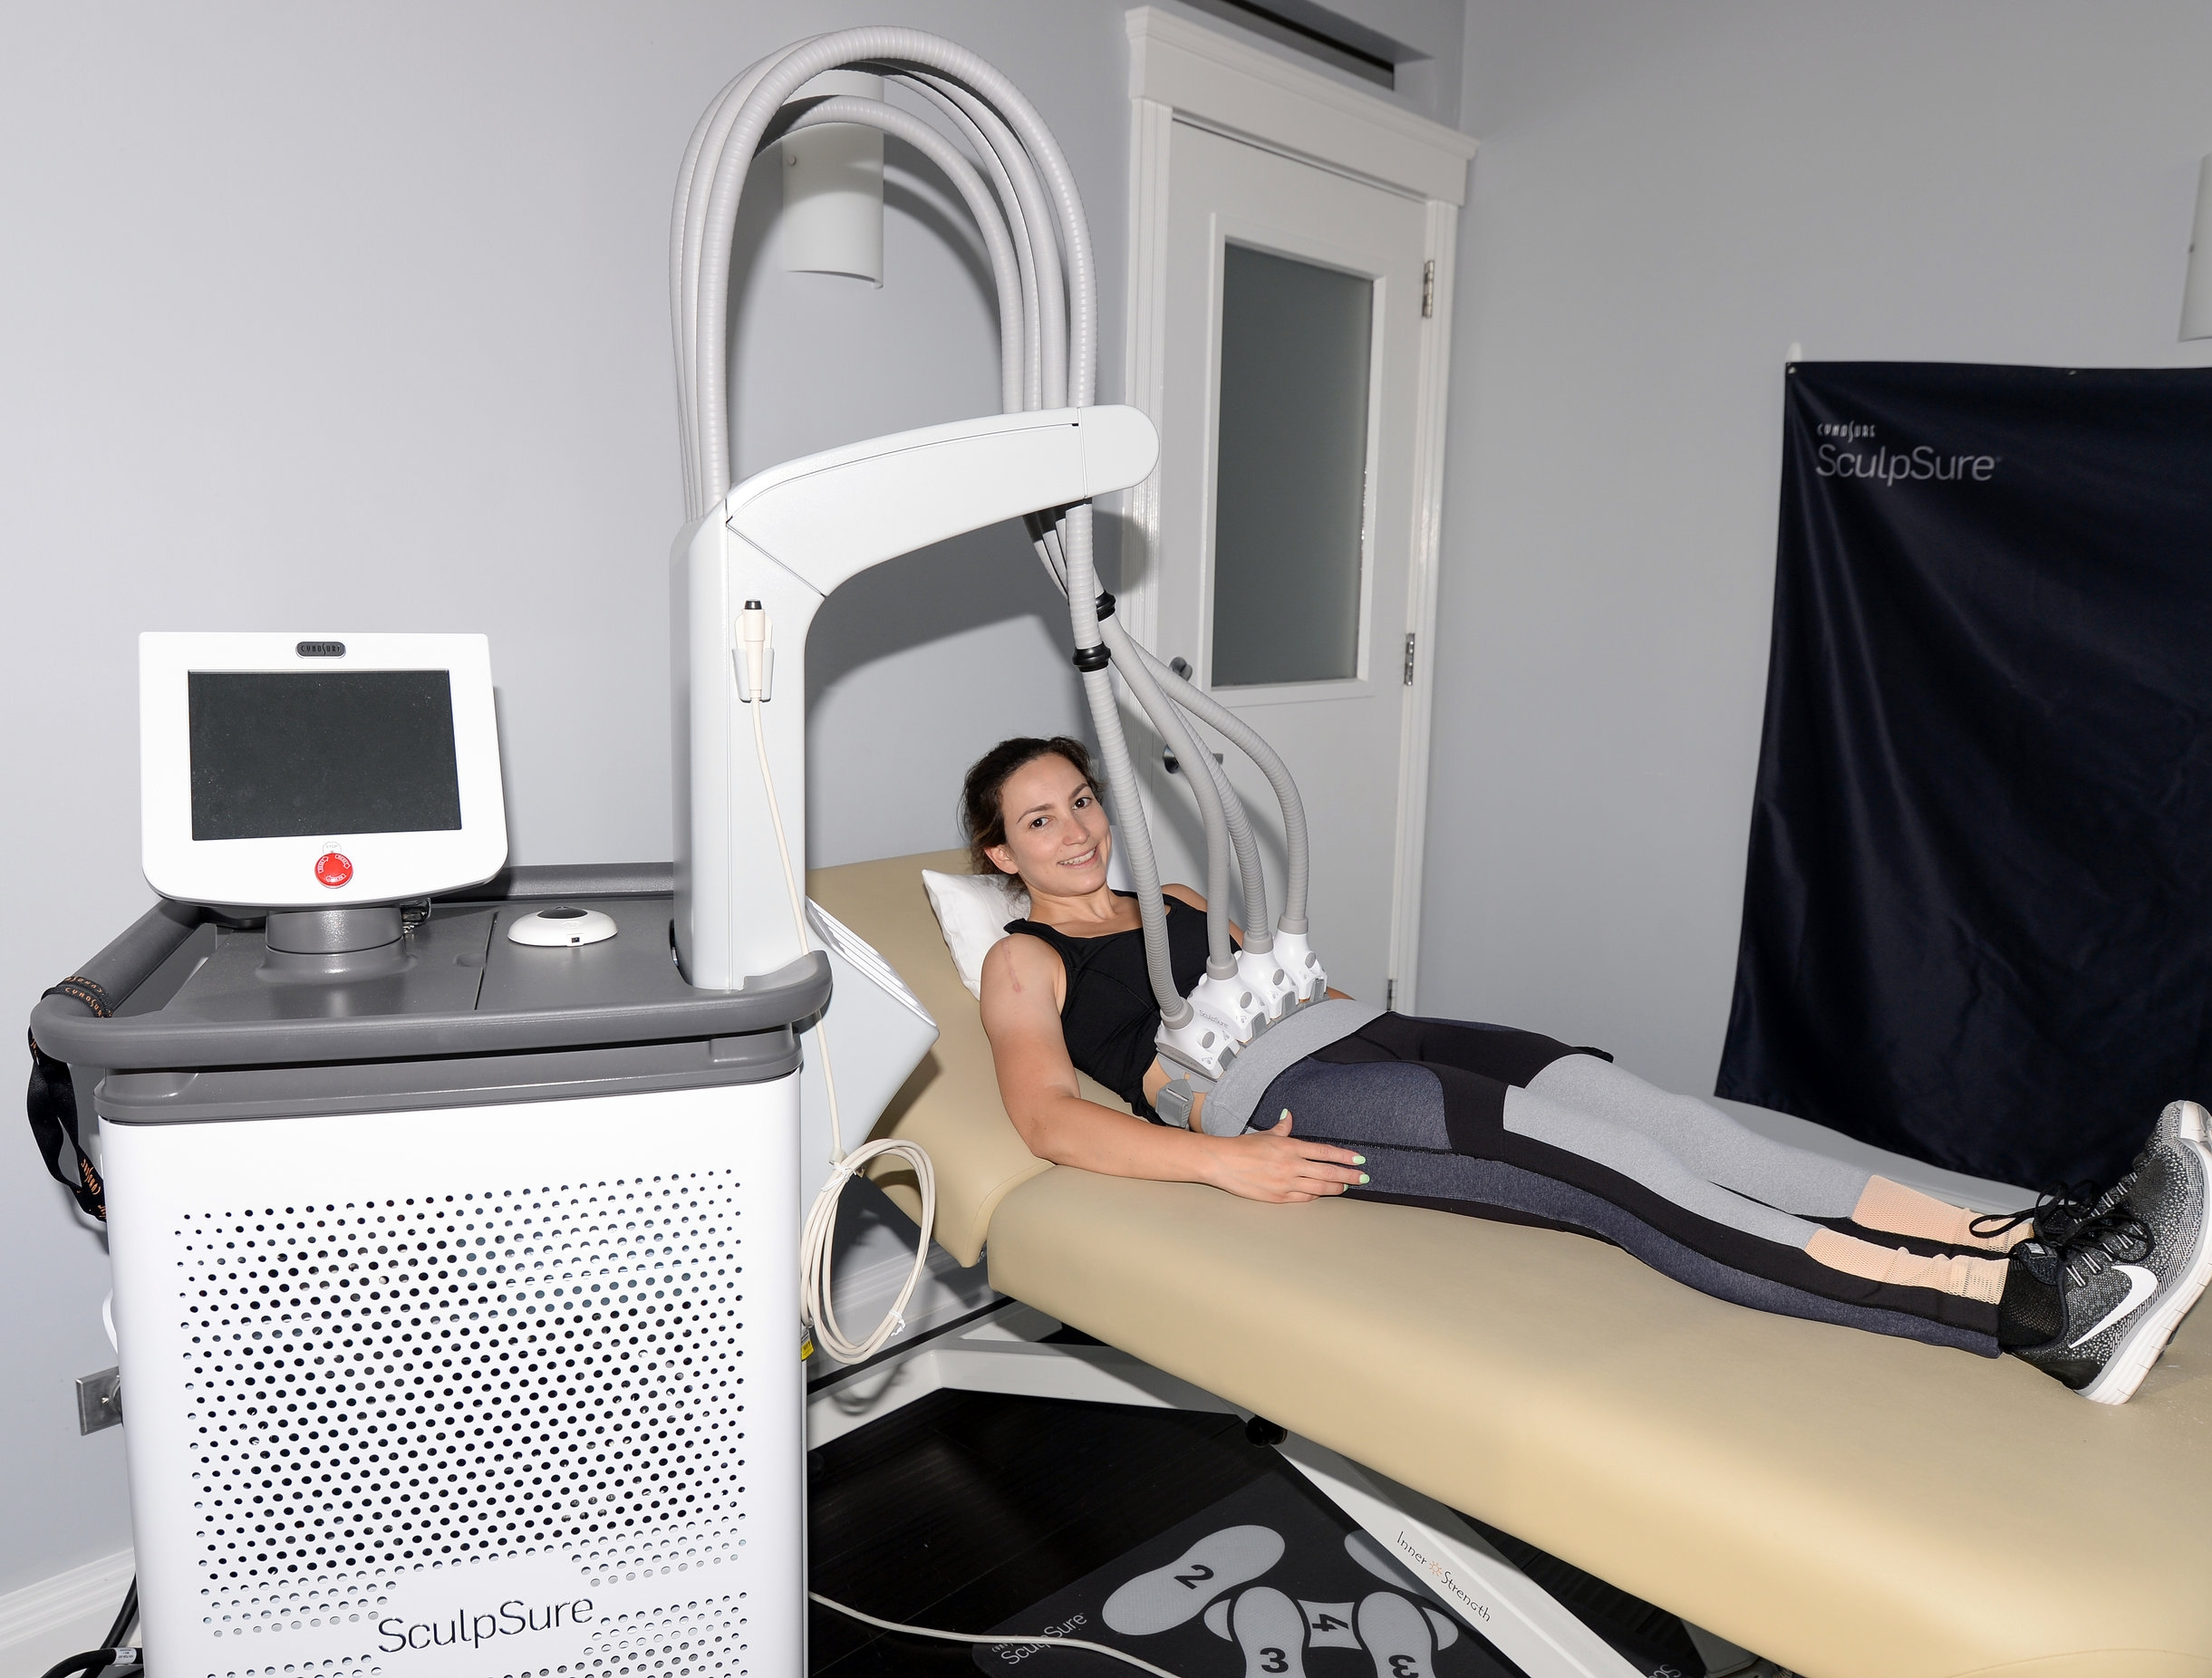 Sloane Stecker in New York City offers non-invasive options to weight loss surgeries like liposuction. With the same benefits, but none of the downtime, SculpSure offers body contouring at it's finest.